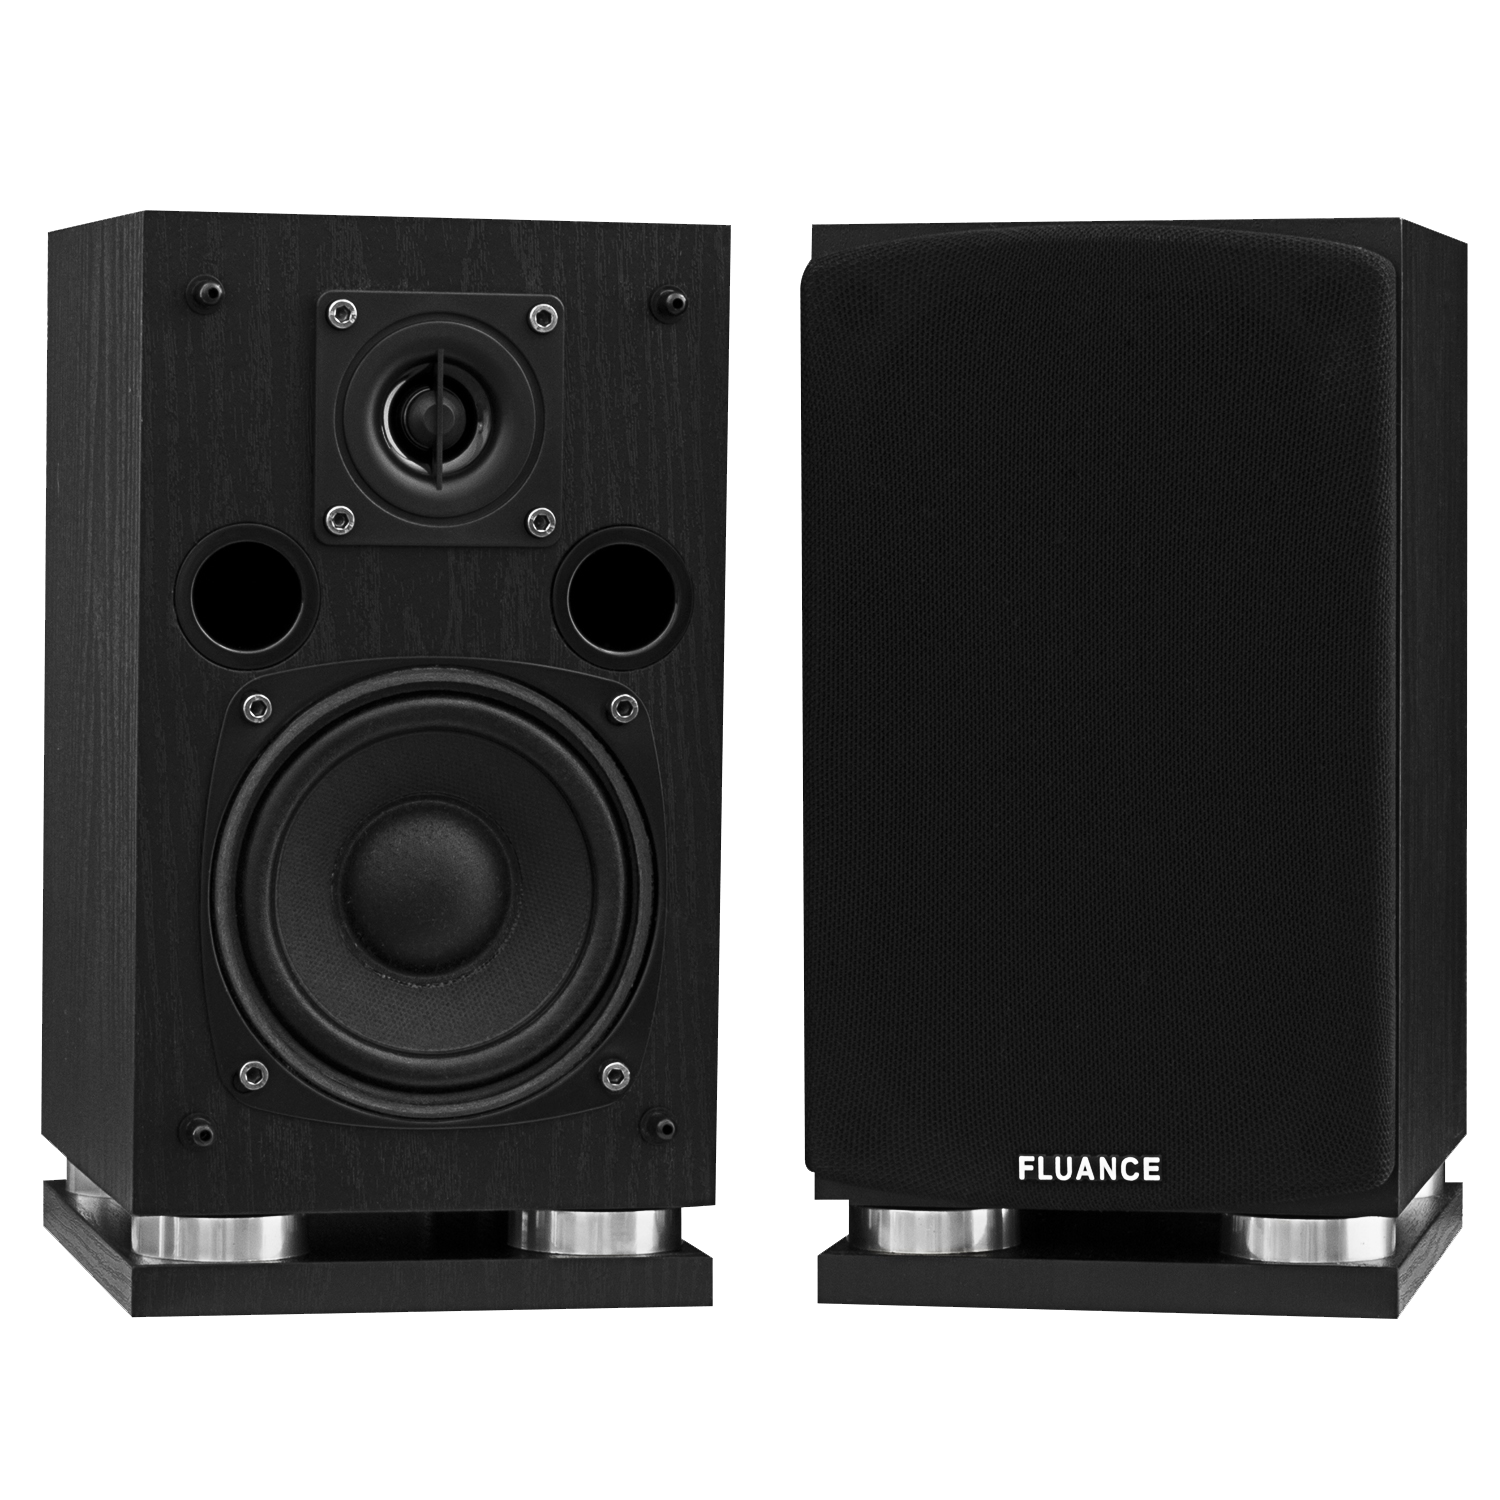 Fluance SX Series Surround Sound Speakers - Black